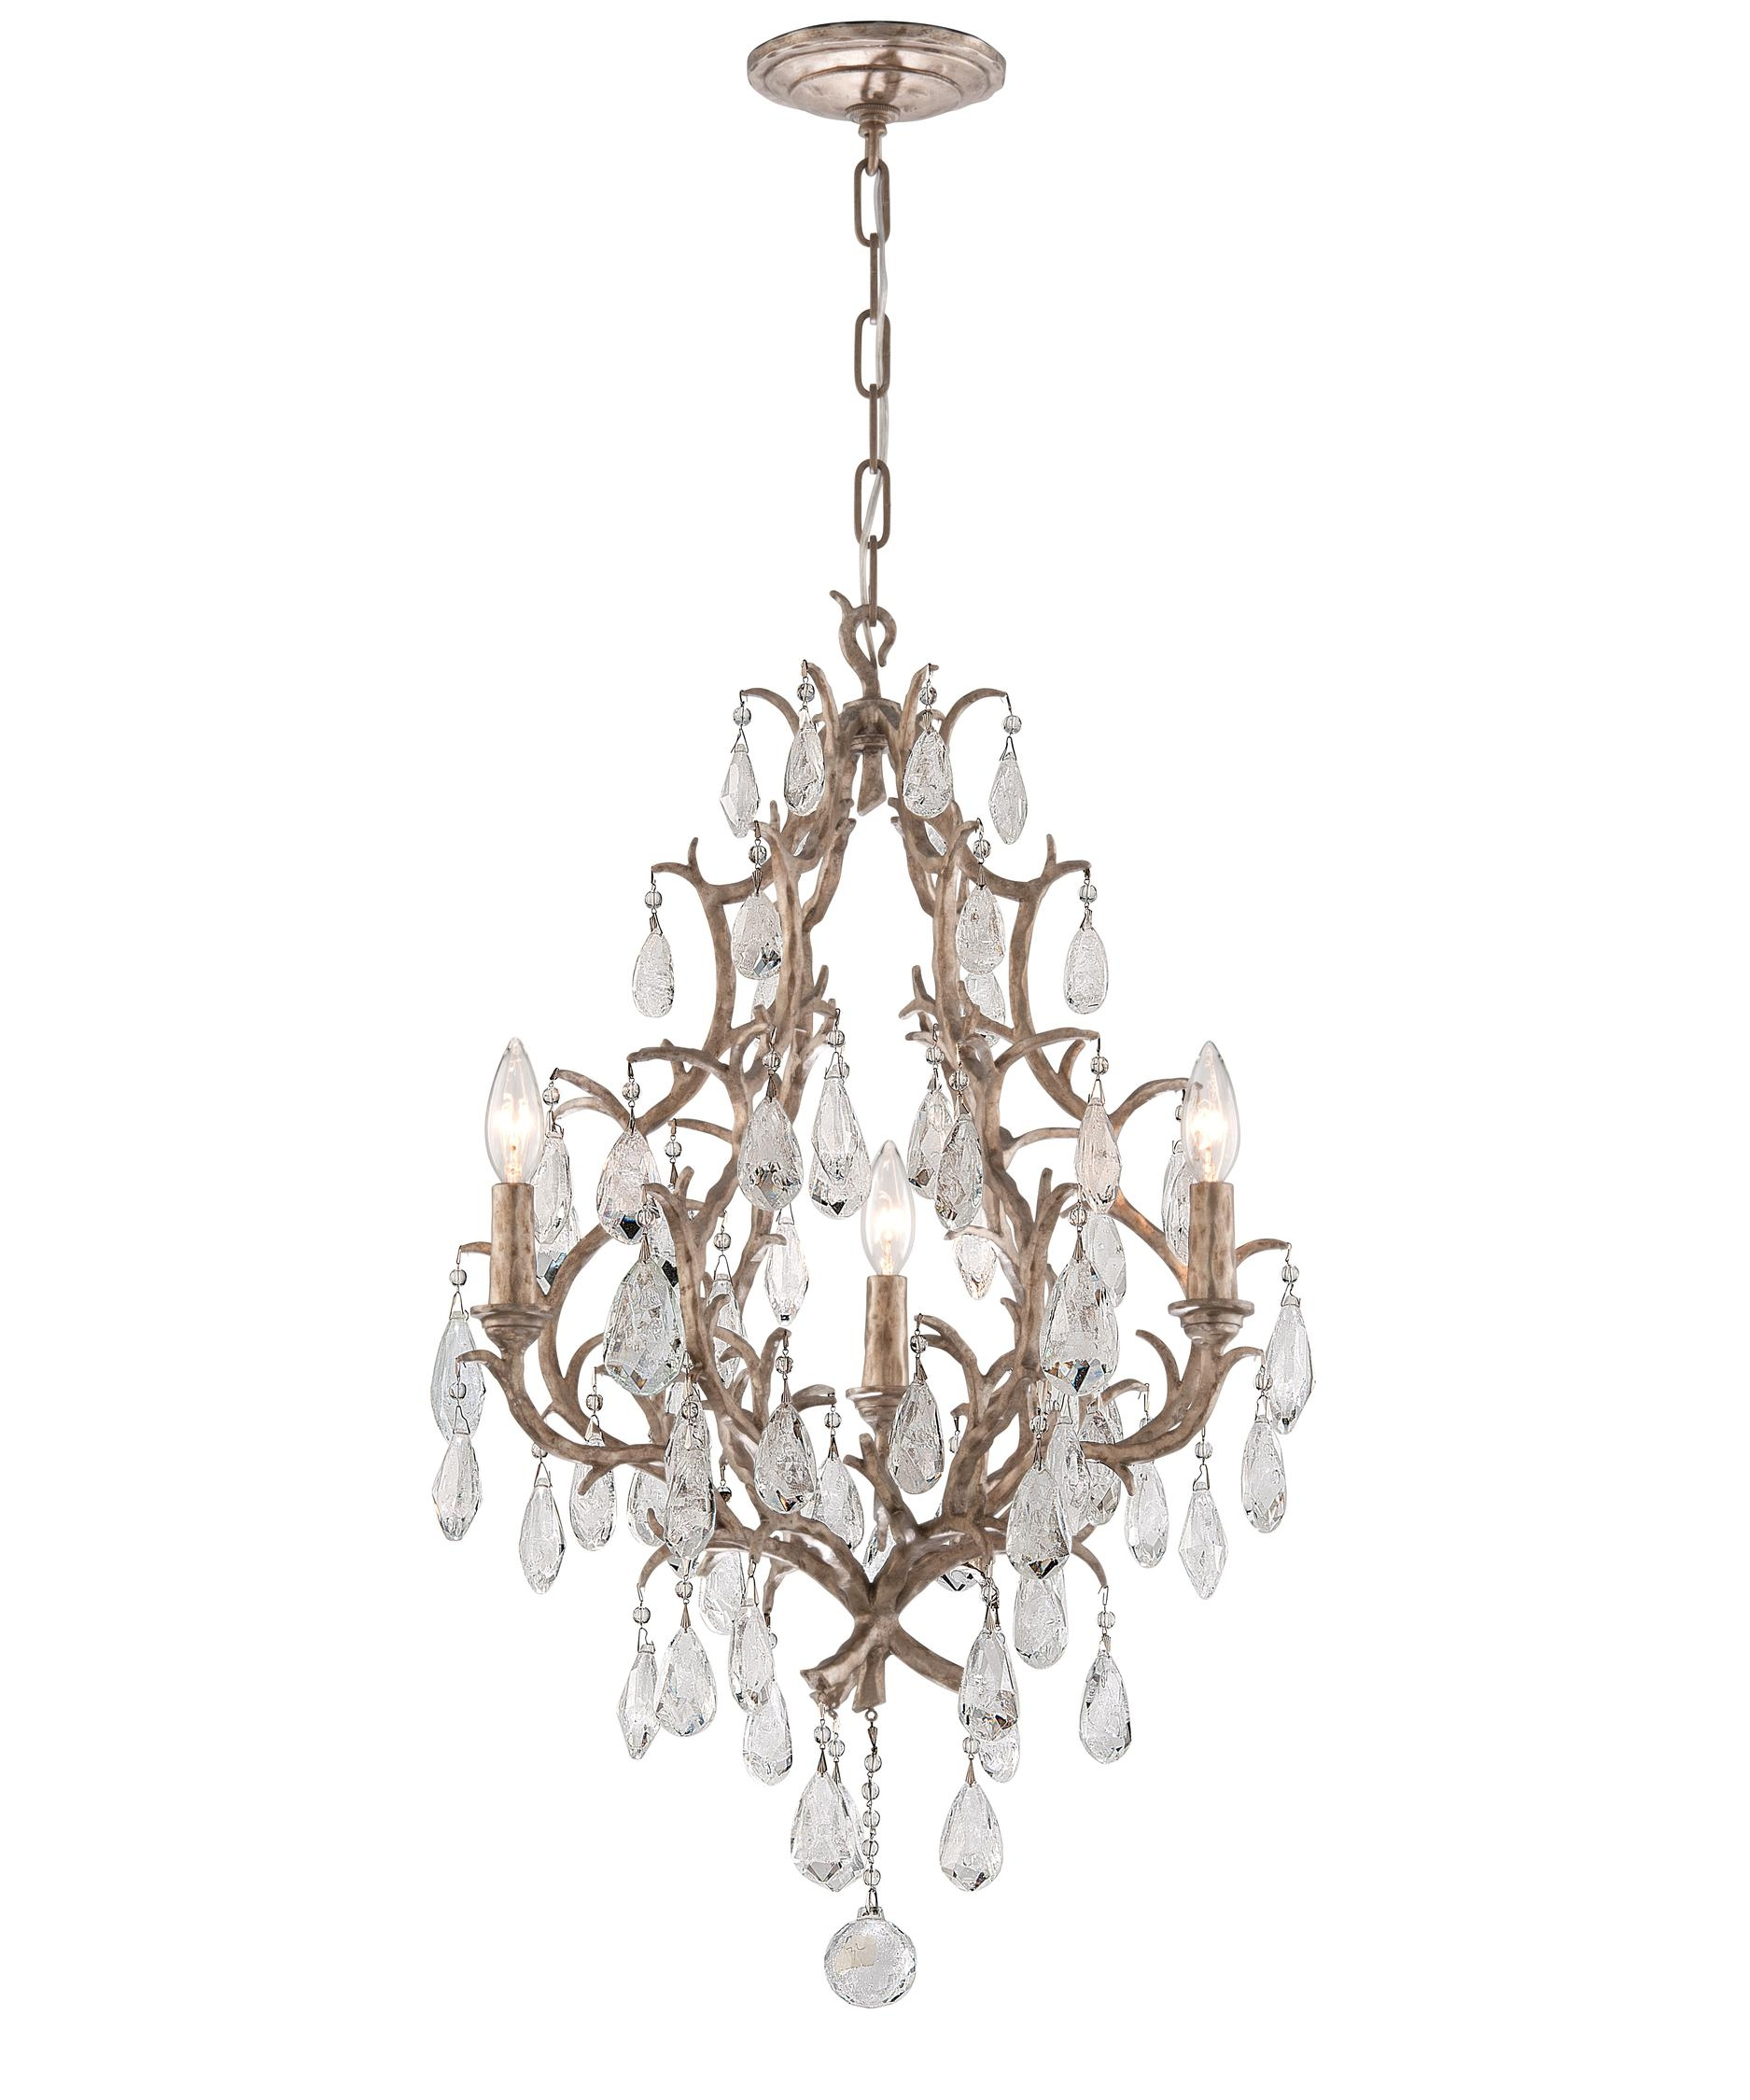 Corbett Lighting 163 03 Amadeus 20 Inch Wide 3 Light Mini Within 3 Light Crystal Chandeliers (Image 5 of 25)